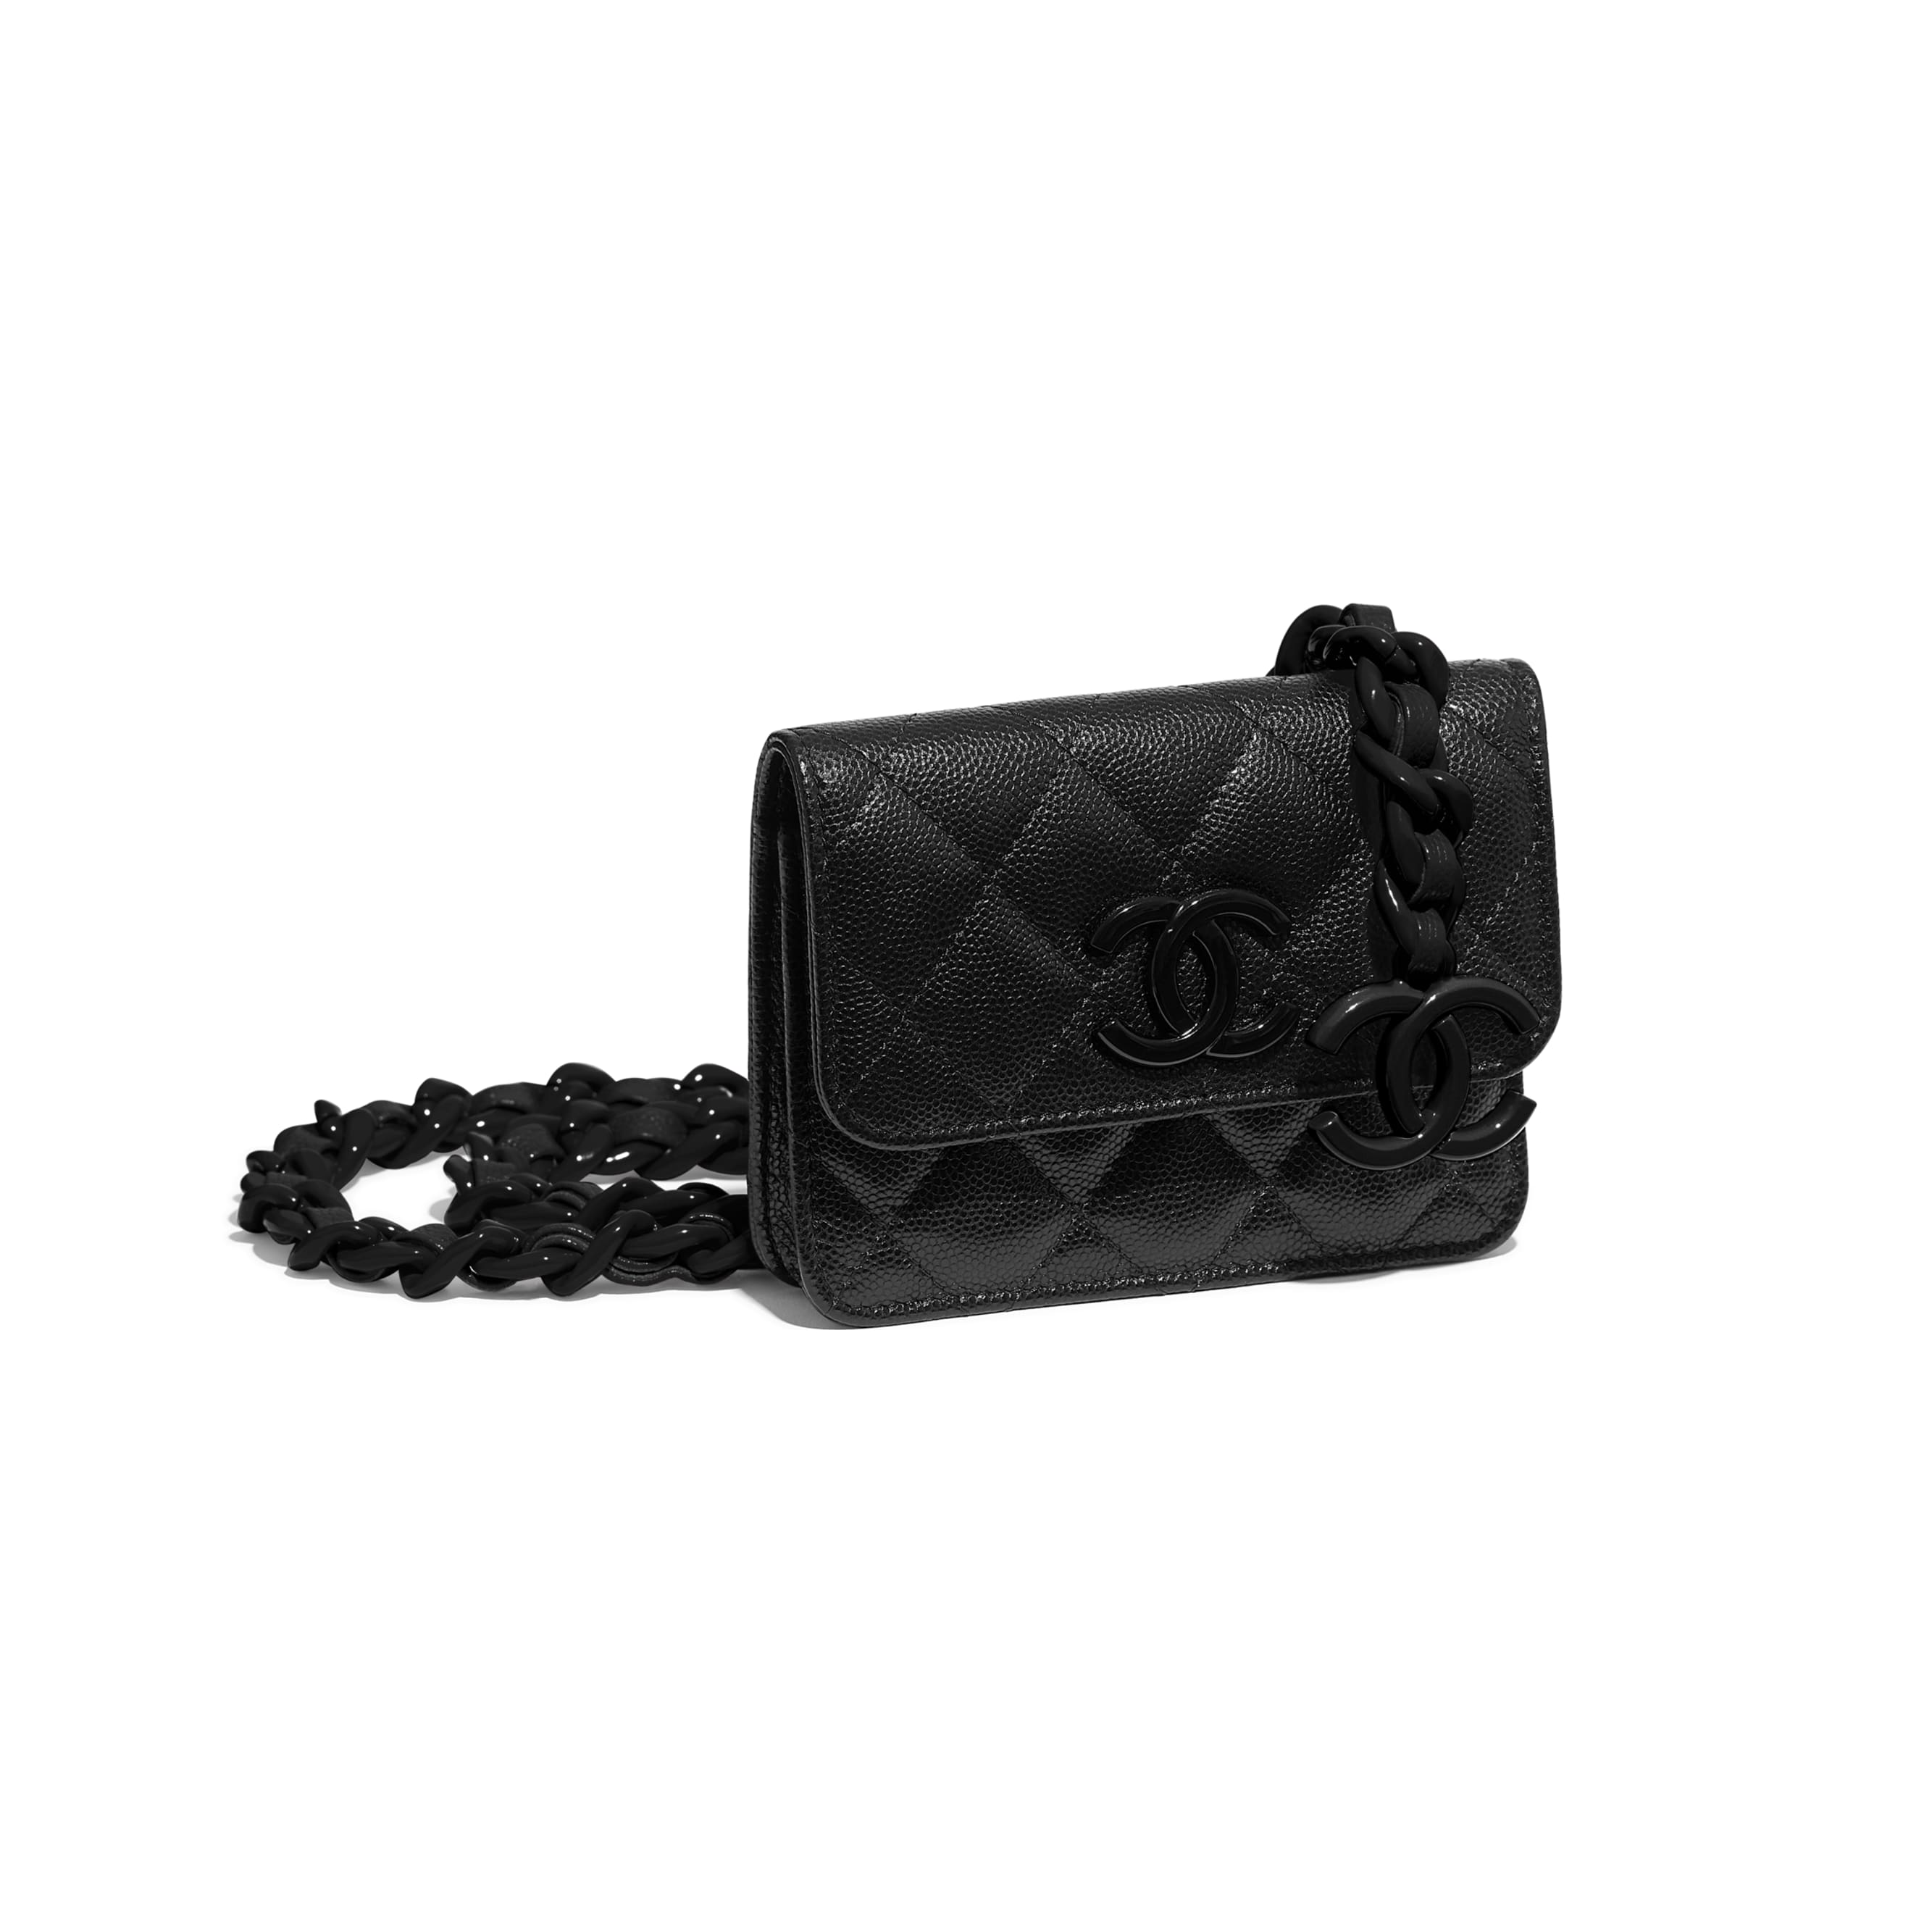 Belt Flap Card Holder - Black - Grained Calfskin & Lacquered Metal - CHANEL - Extra view - see standard sized version